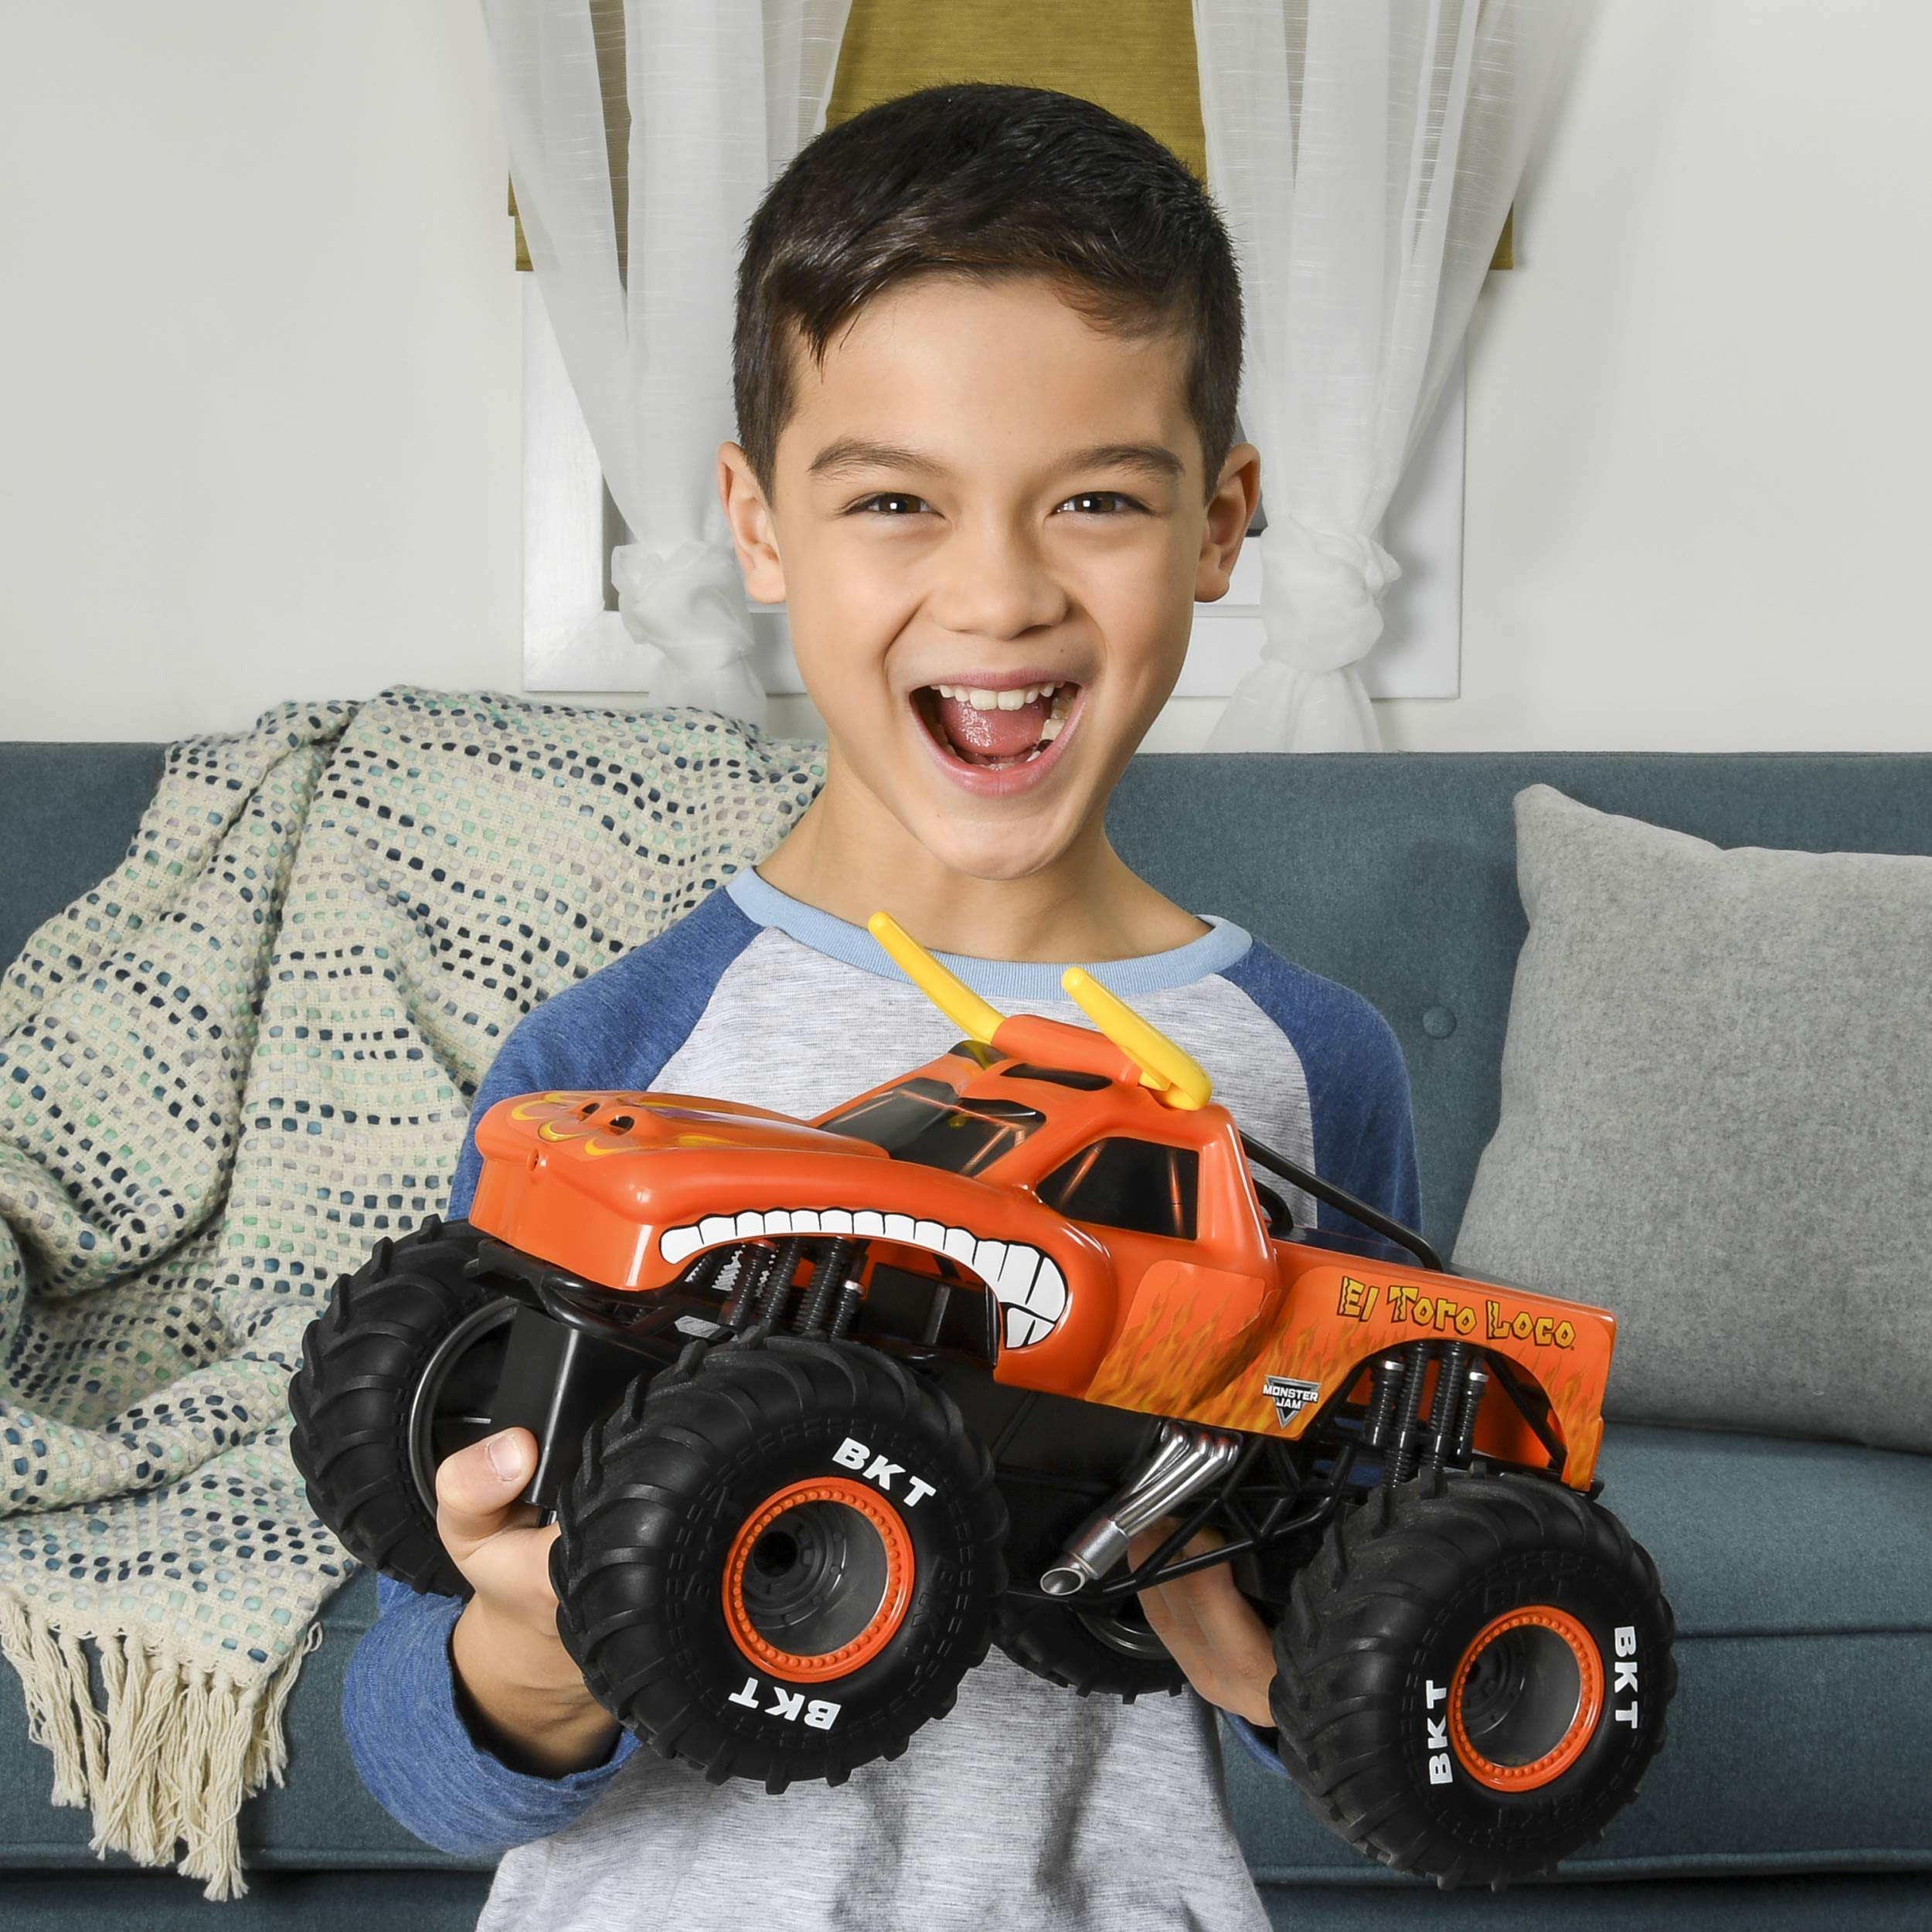 Monster Jam Official El Toro Loco Remote Control Monster Truck, 1:15 Scale, 2.4 GHz by Monster Jam (Image #6)